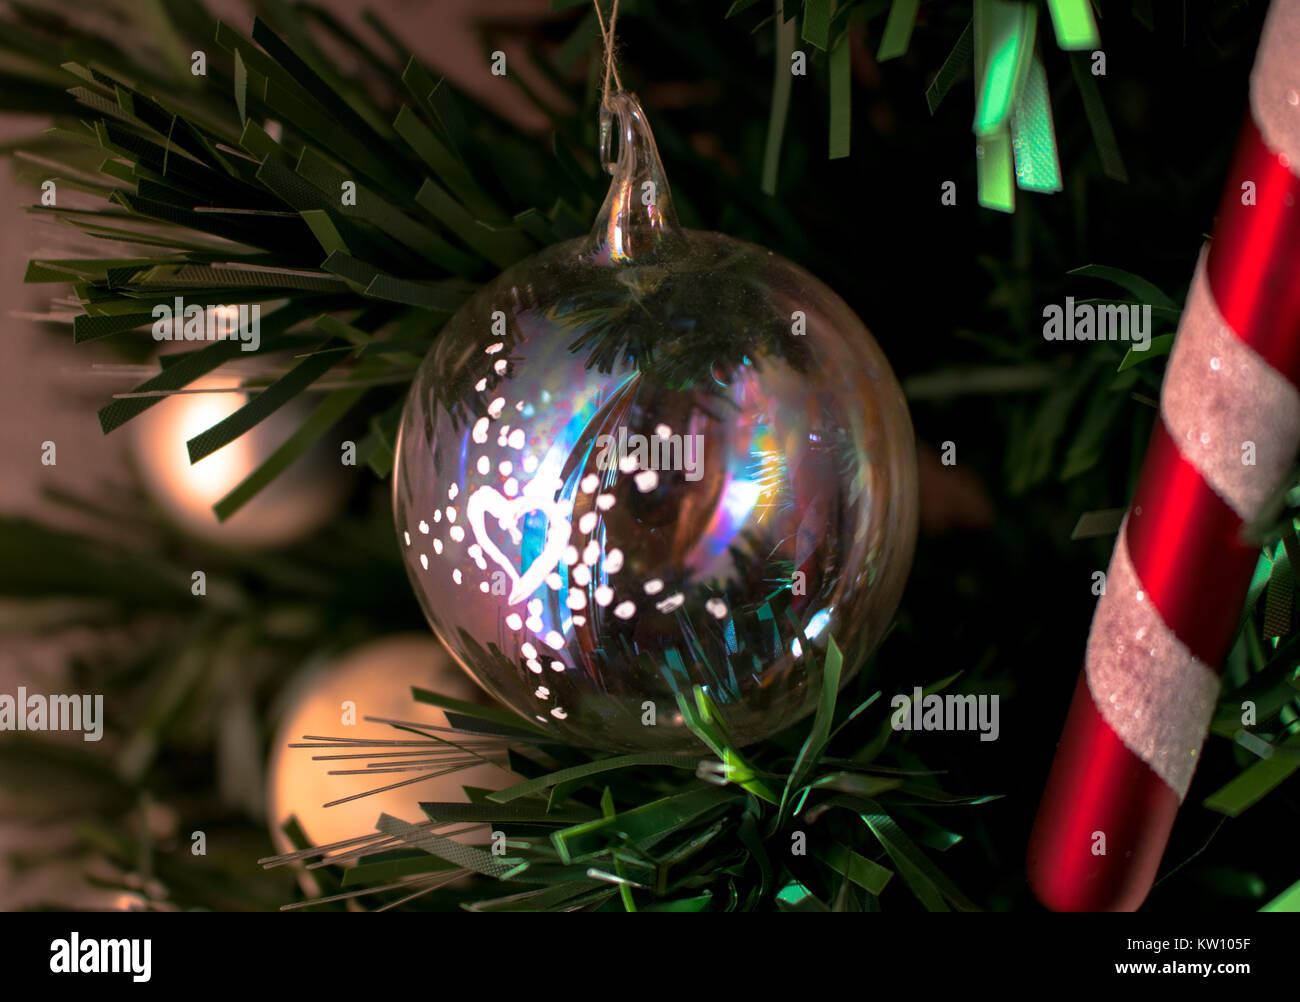 Christmas Ornament - Stock Image